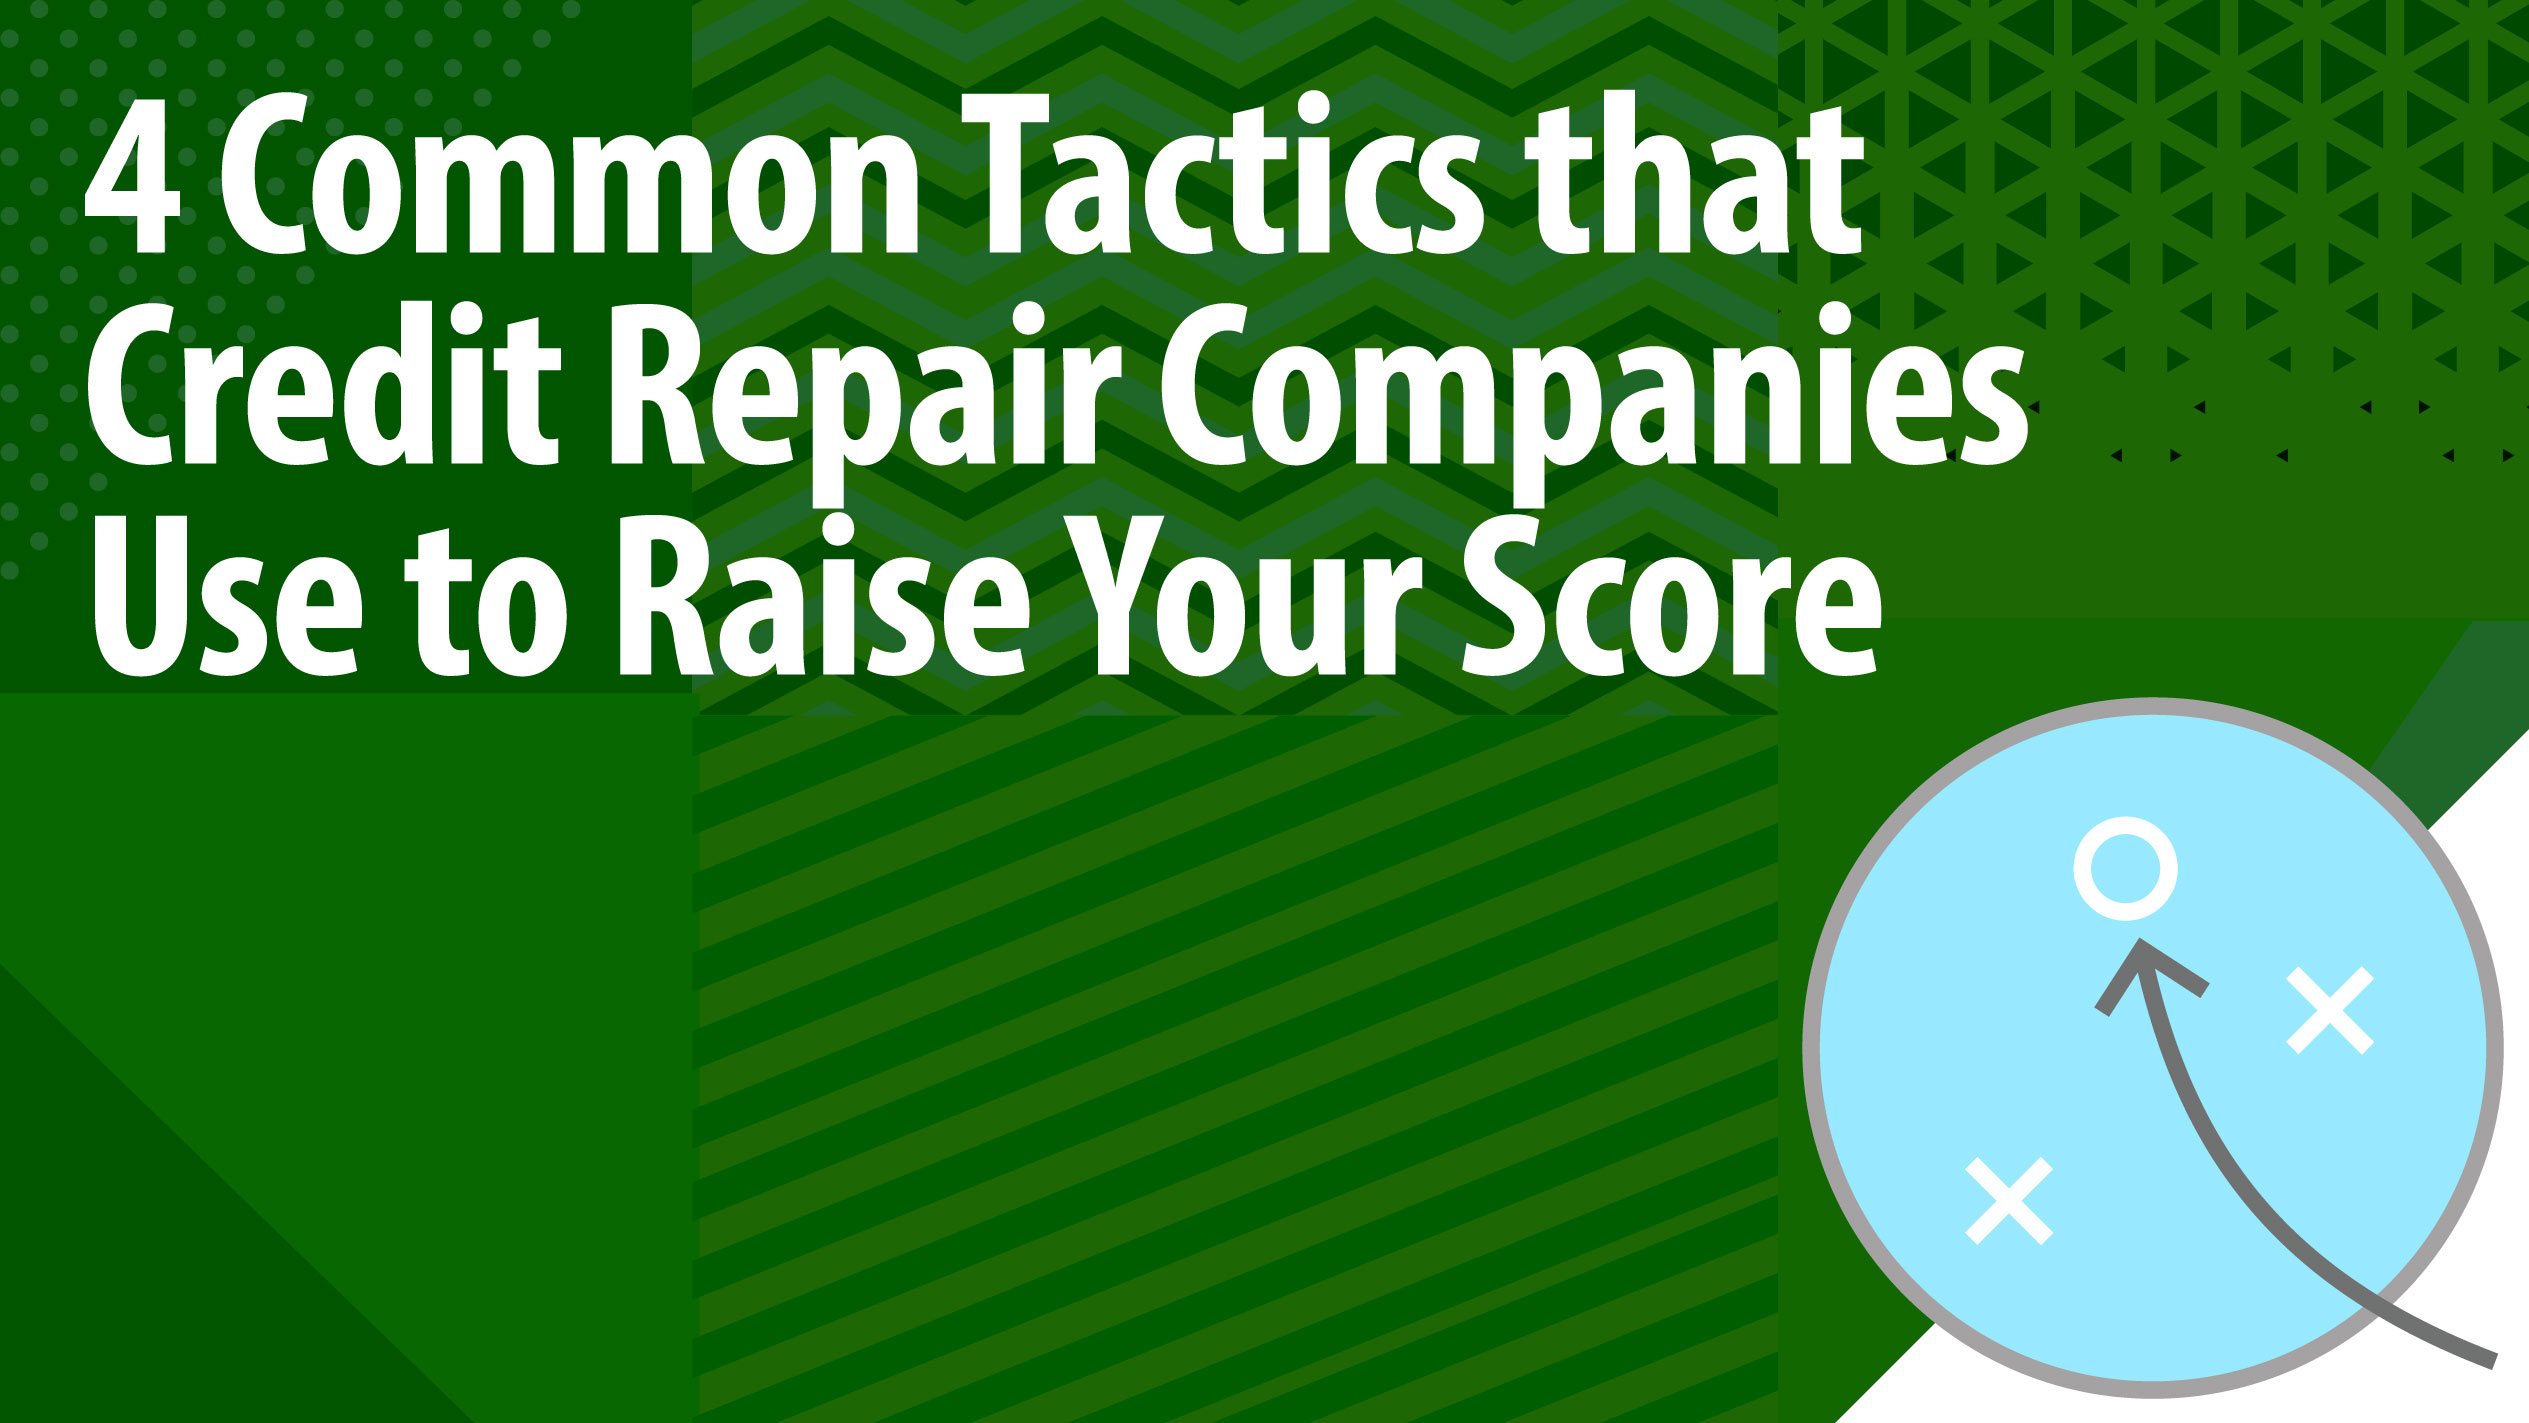 4 Common Tactics that Credit Repair Companies Use to Raise Your Score